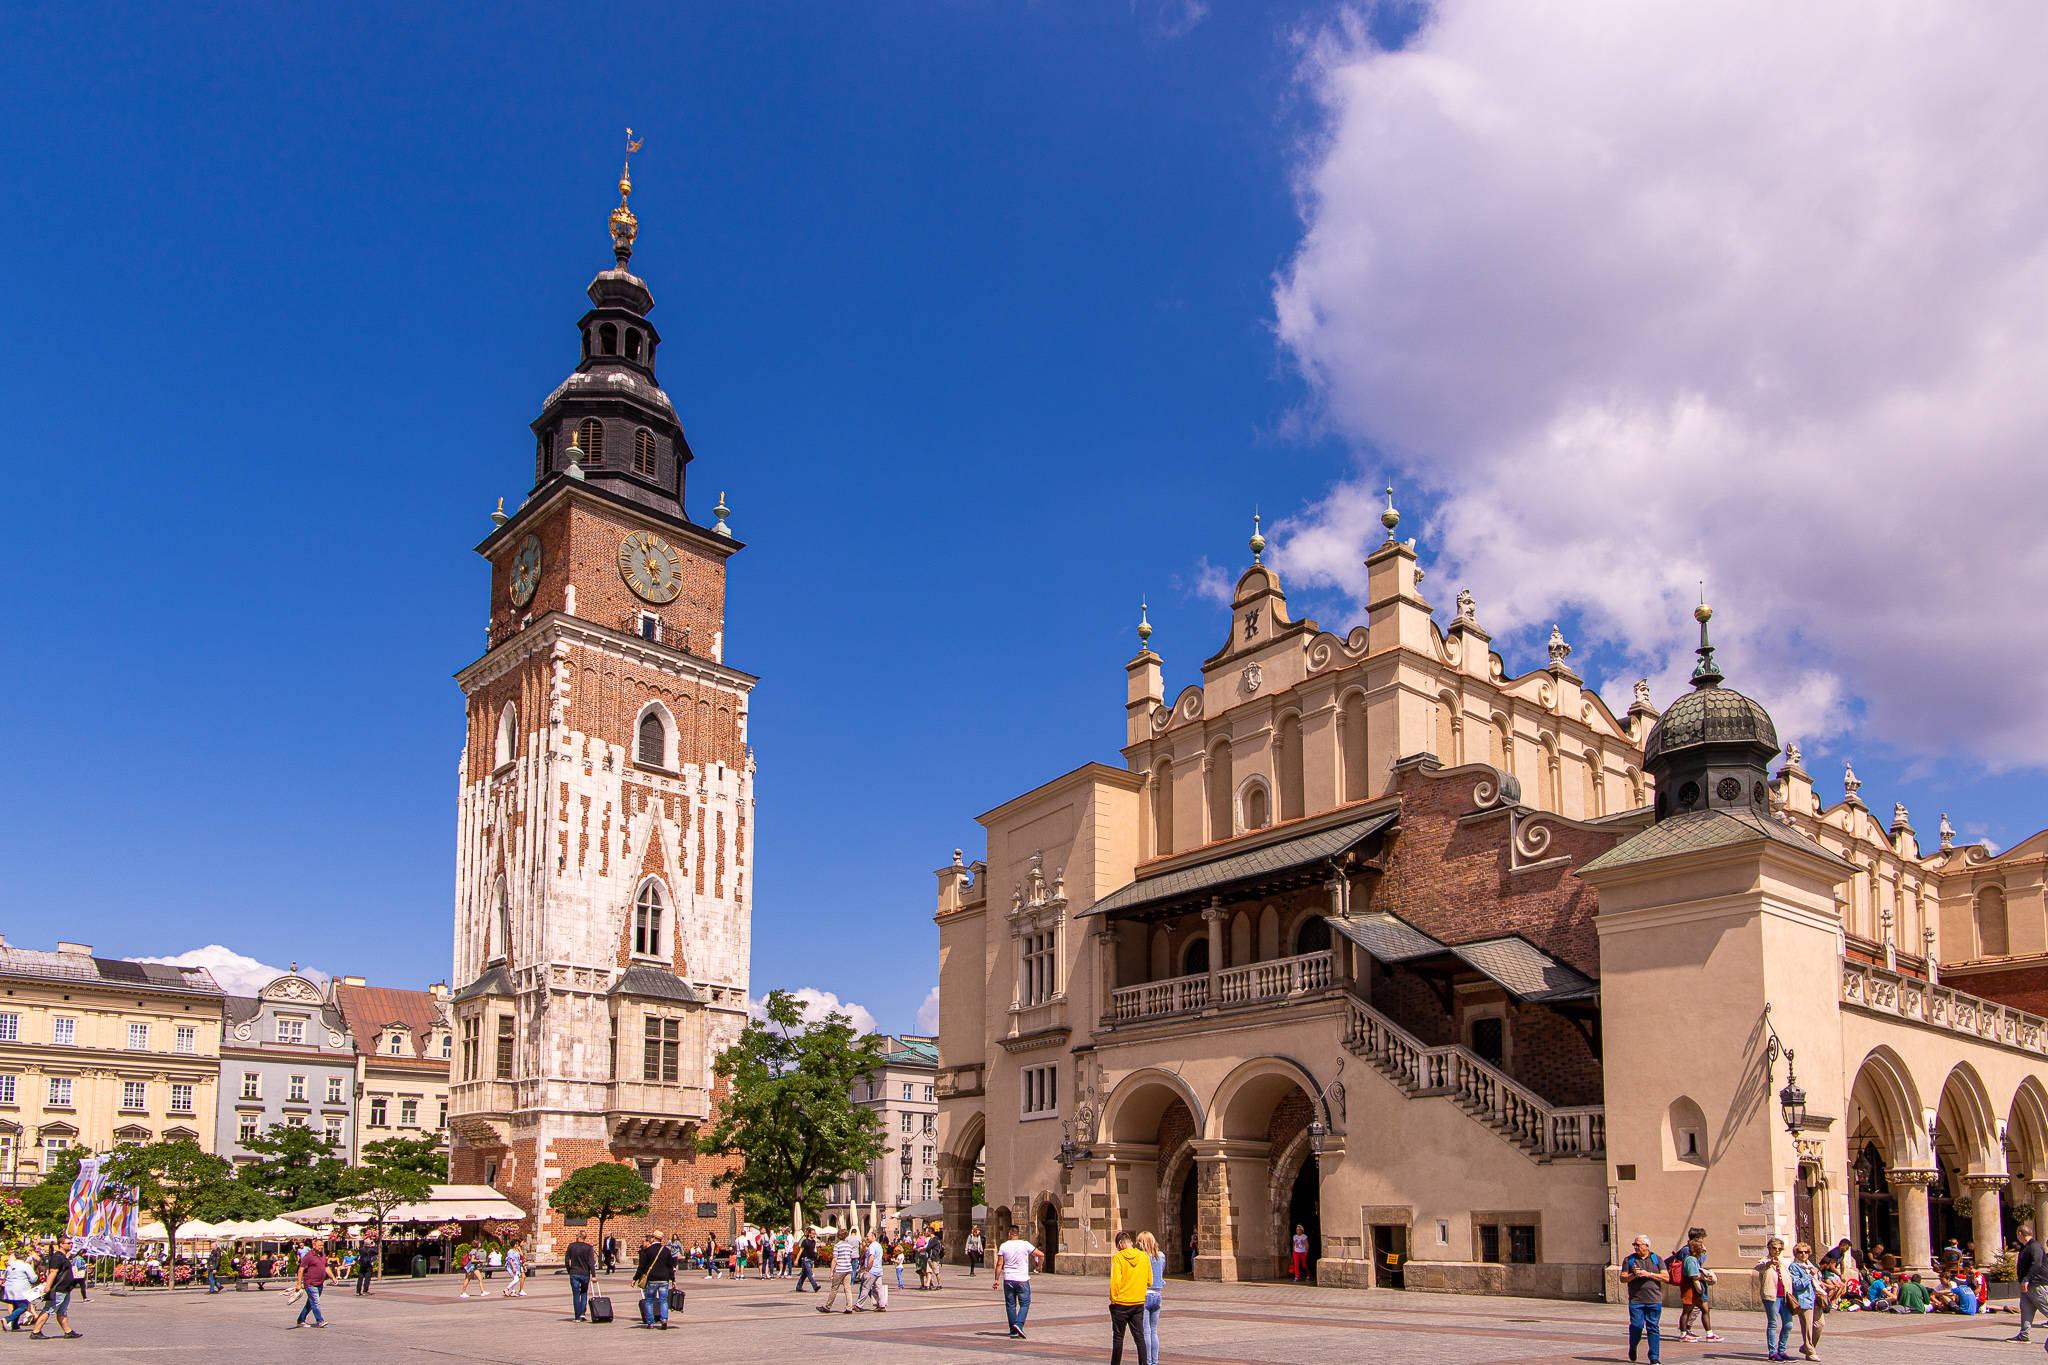 Krakow Town Hall and Cloth Hall off to the right